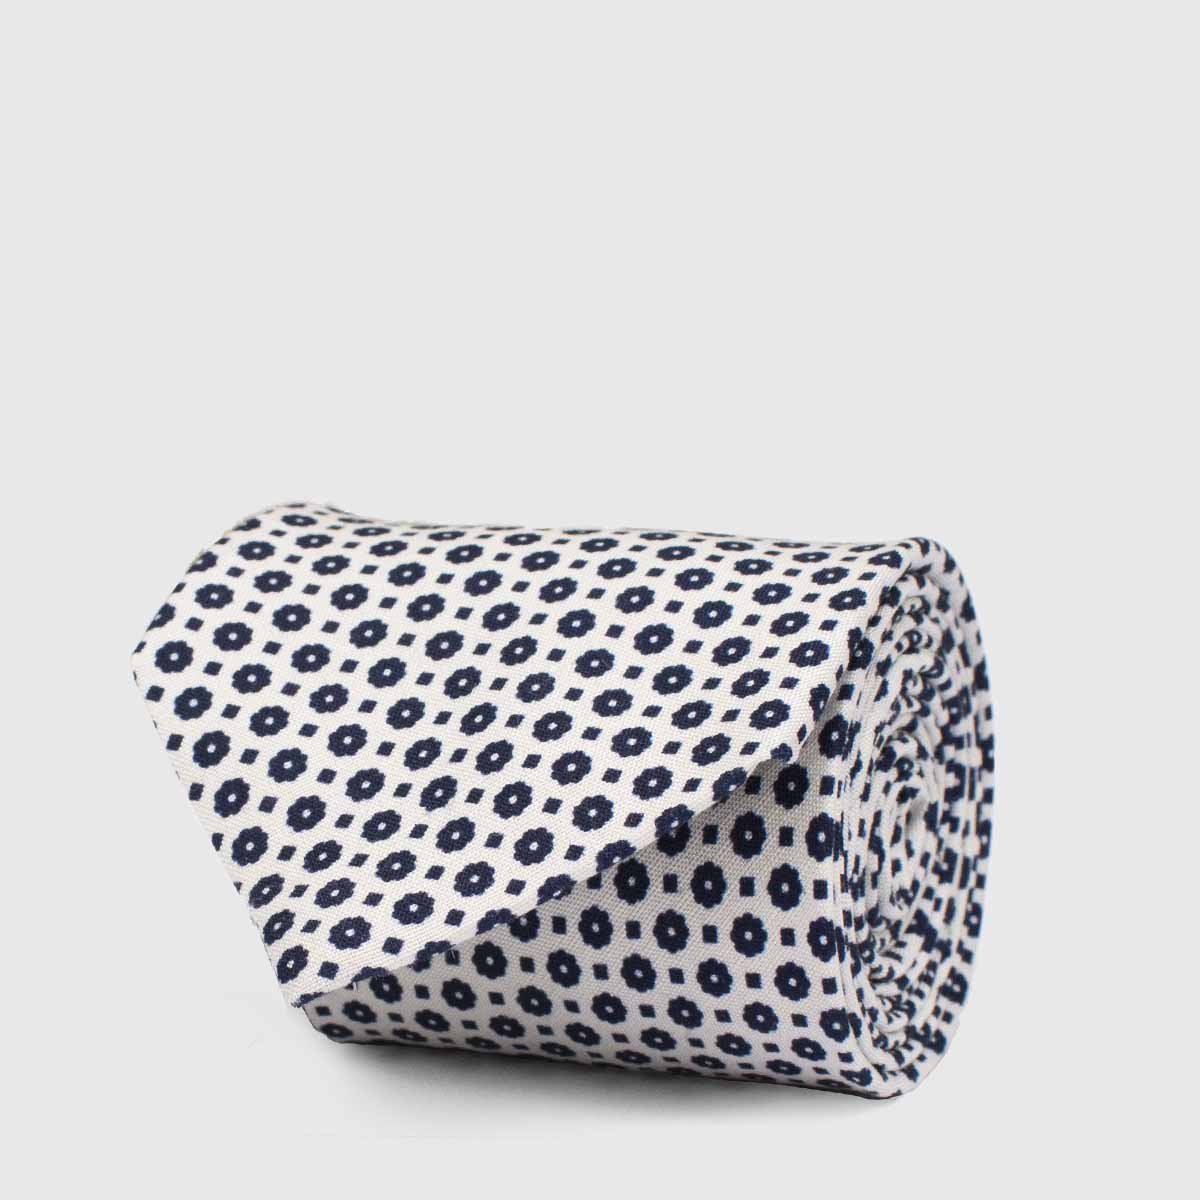 5-Folds cream background Tie with a blue micromotive